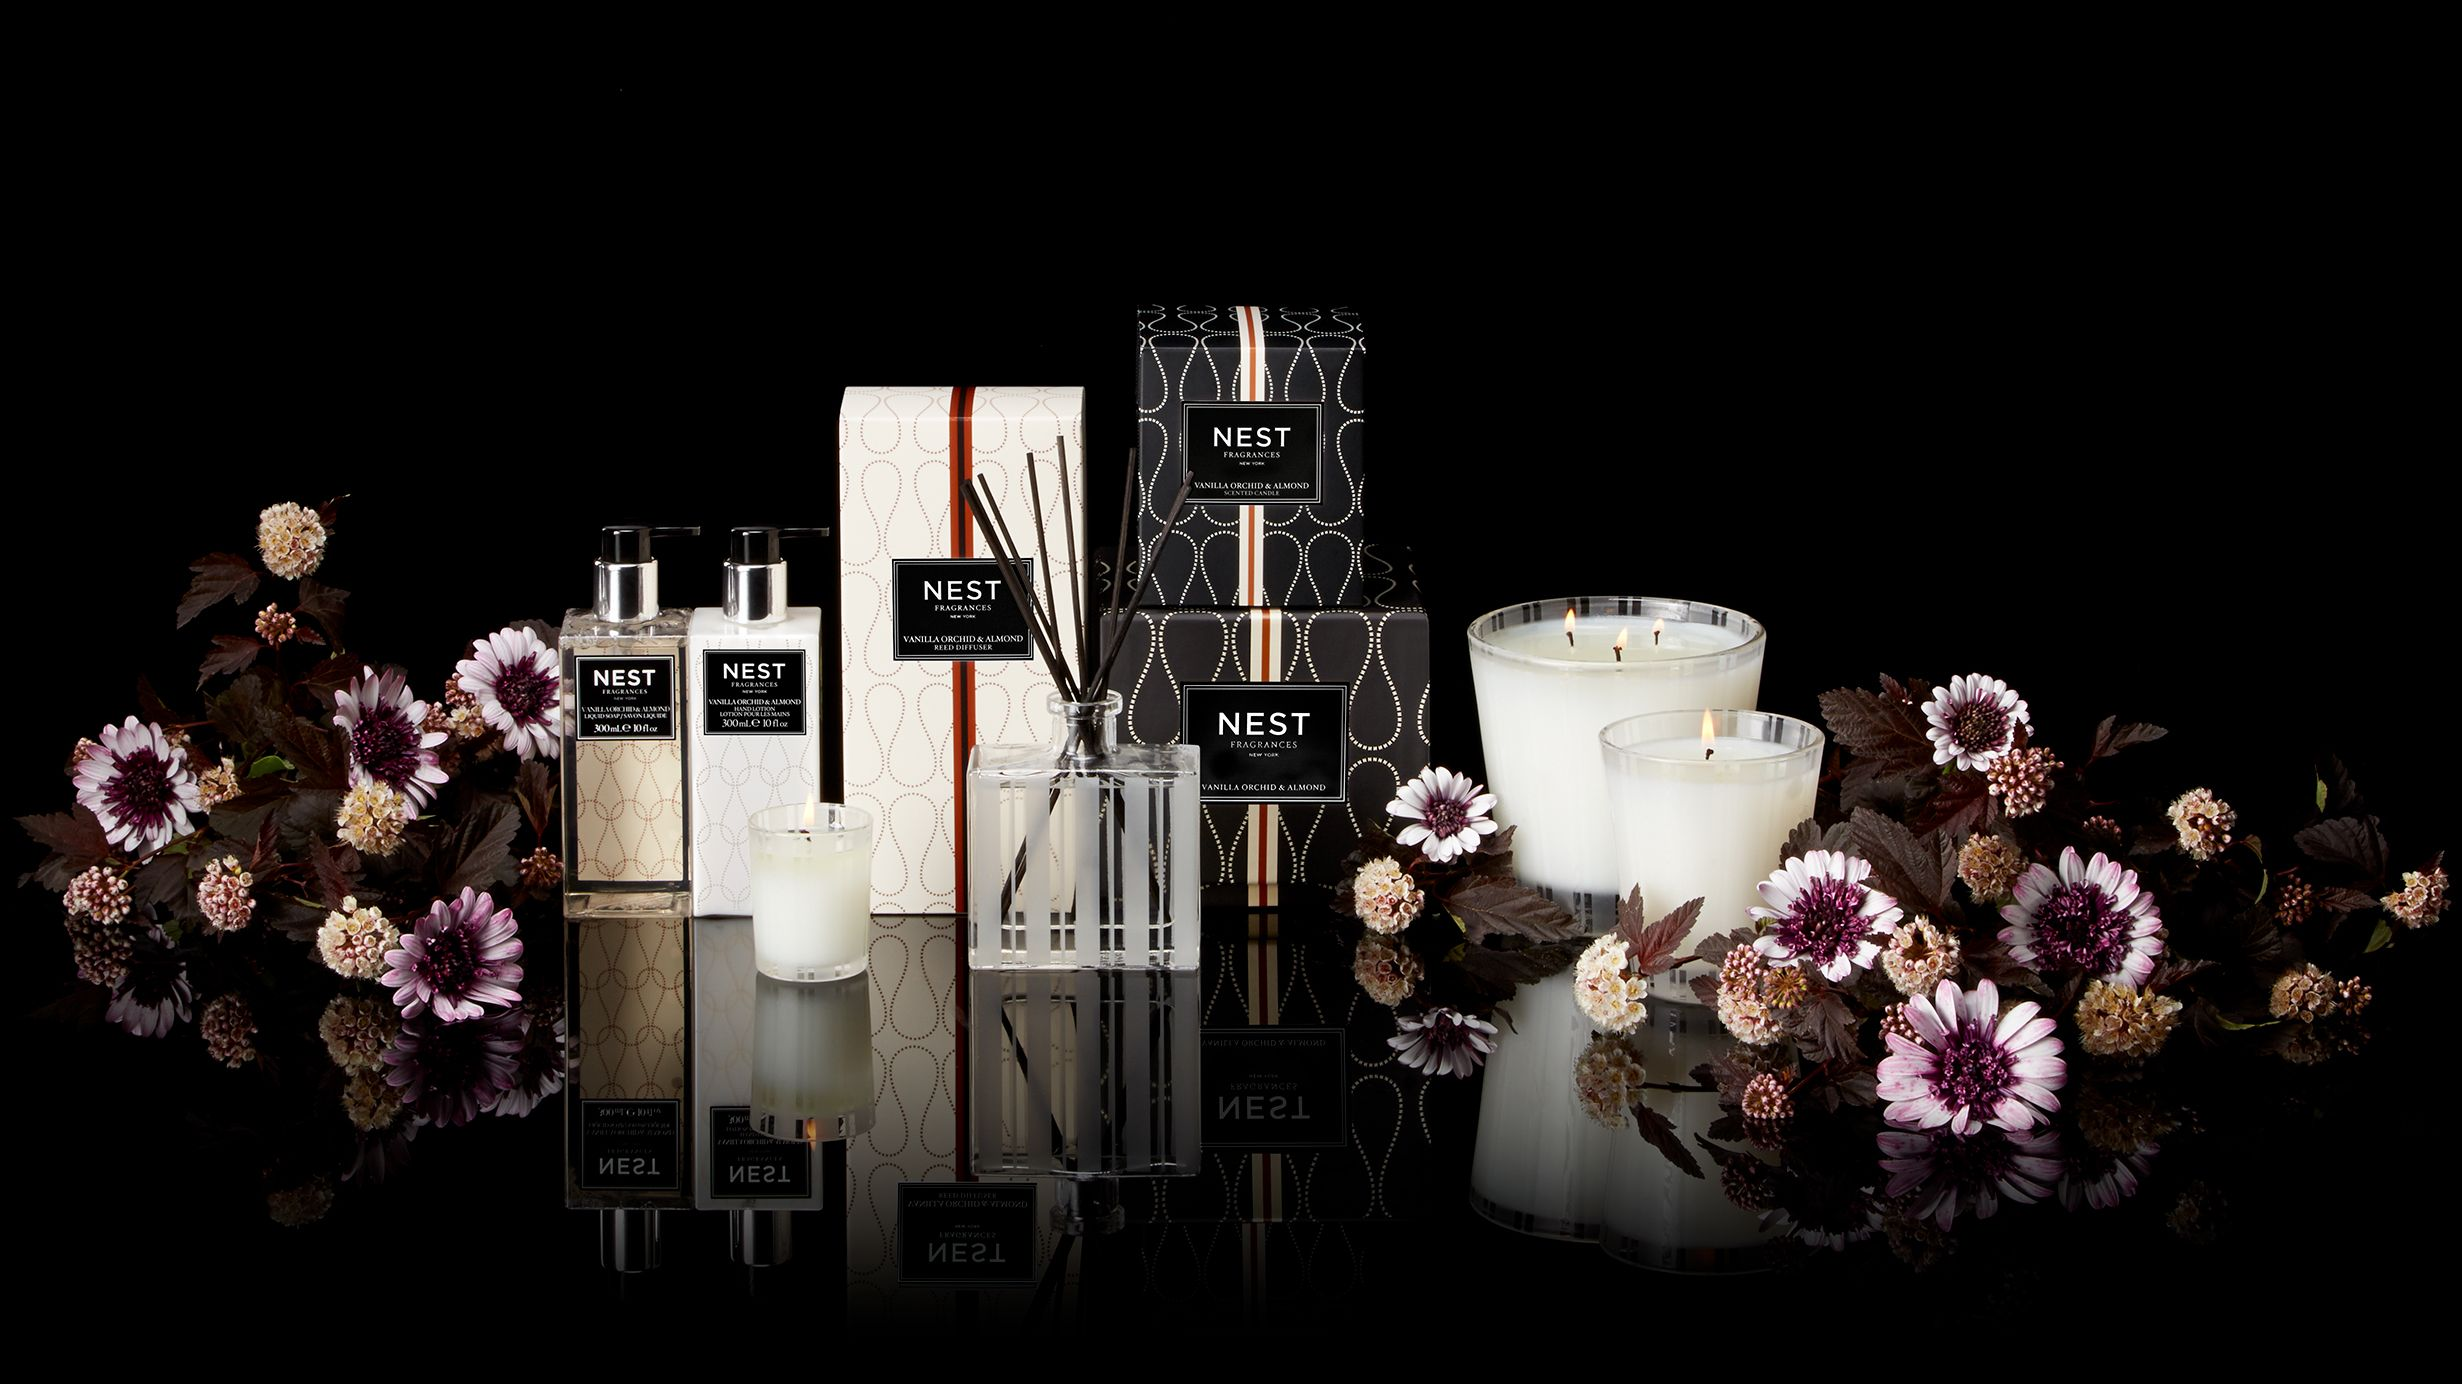 Vanilla orchid u almond home fragrance collection nestfragrances